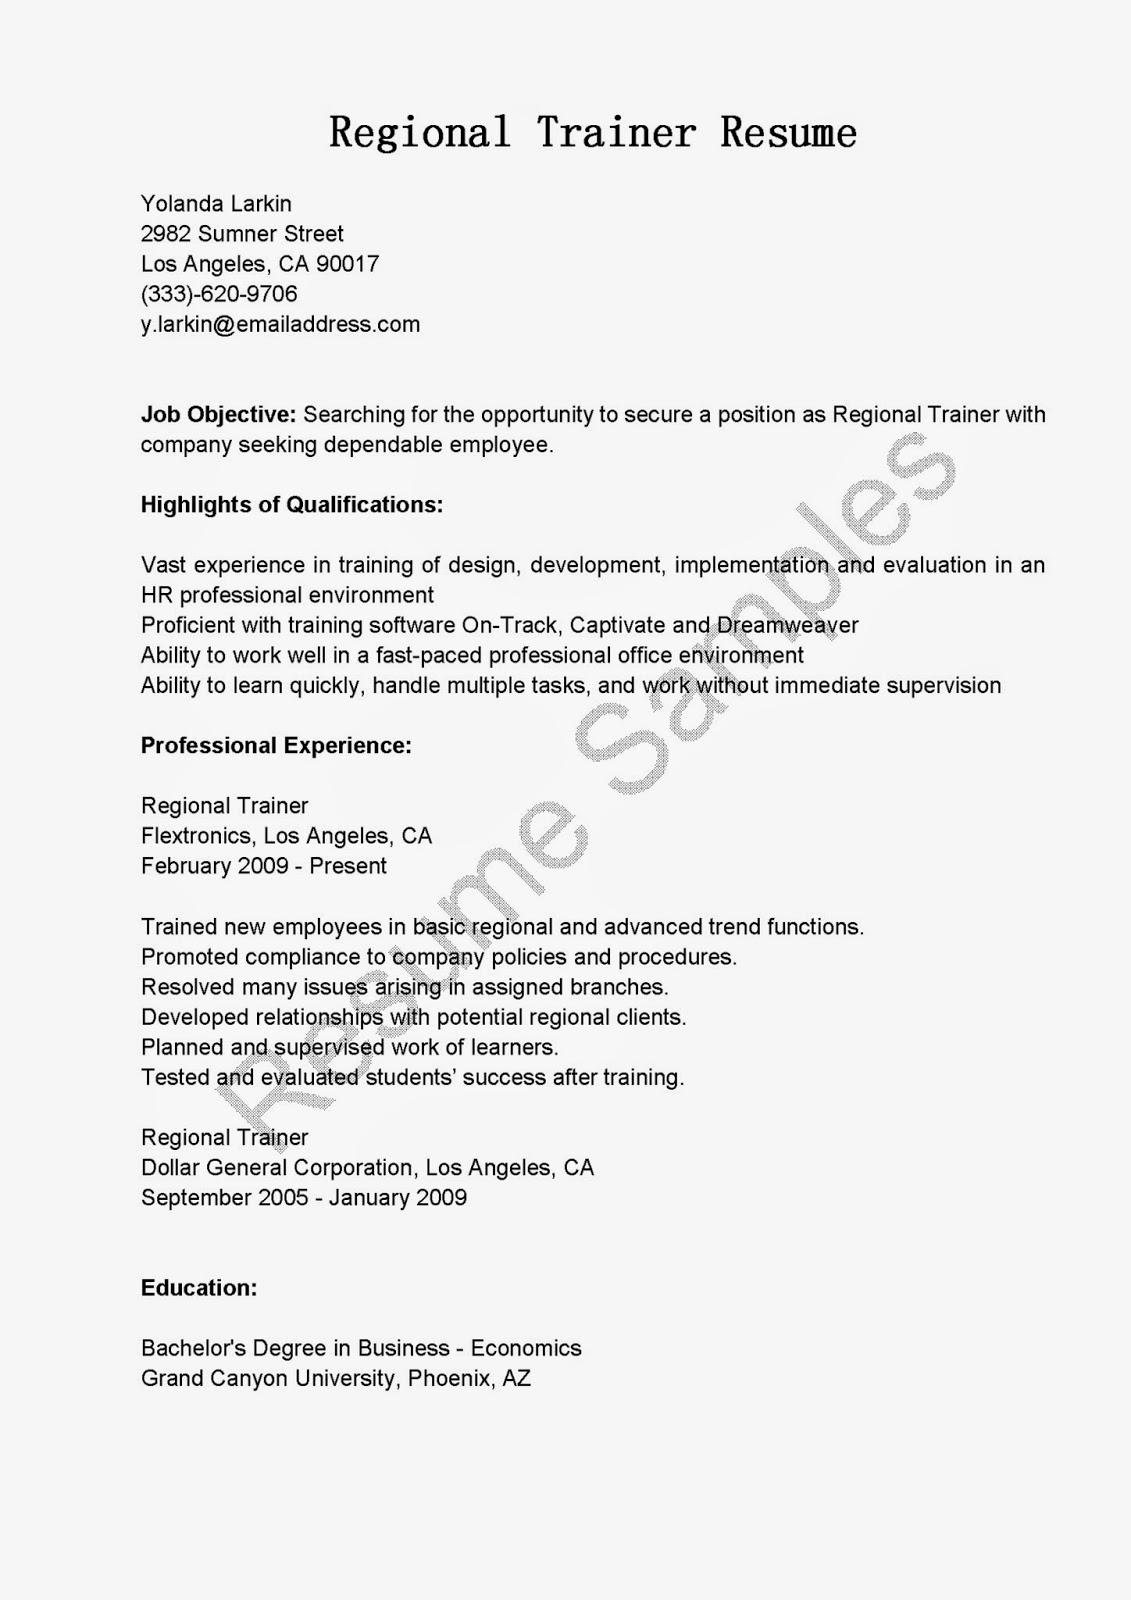 Unusual 100 Resume Words Thick 12 Month Budget Template Square 2014 Free Calendar Template 21st Invitation Templates Free Young 3 Different Resume Types Coloured3 Different Type Of Resumes Free Personal Trainer Resume Samples   Vosvete